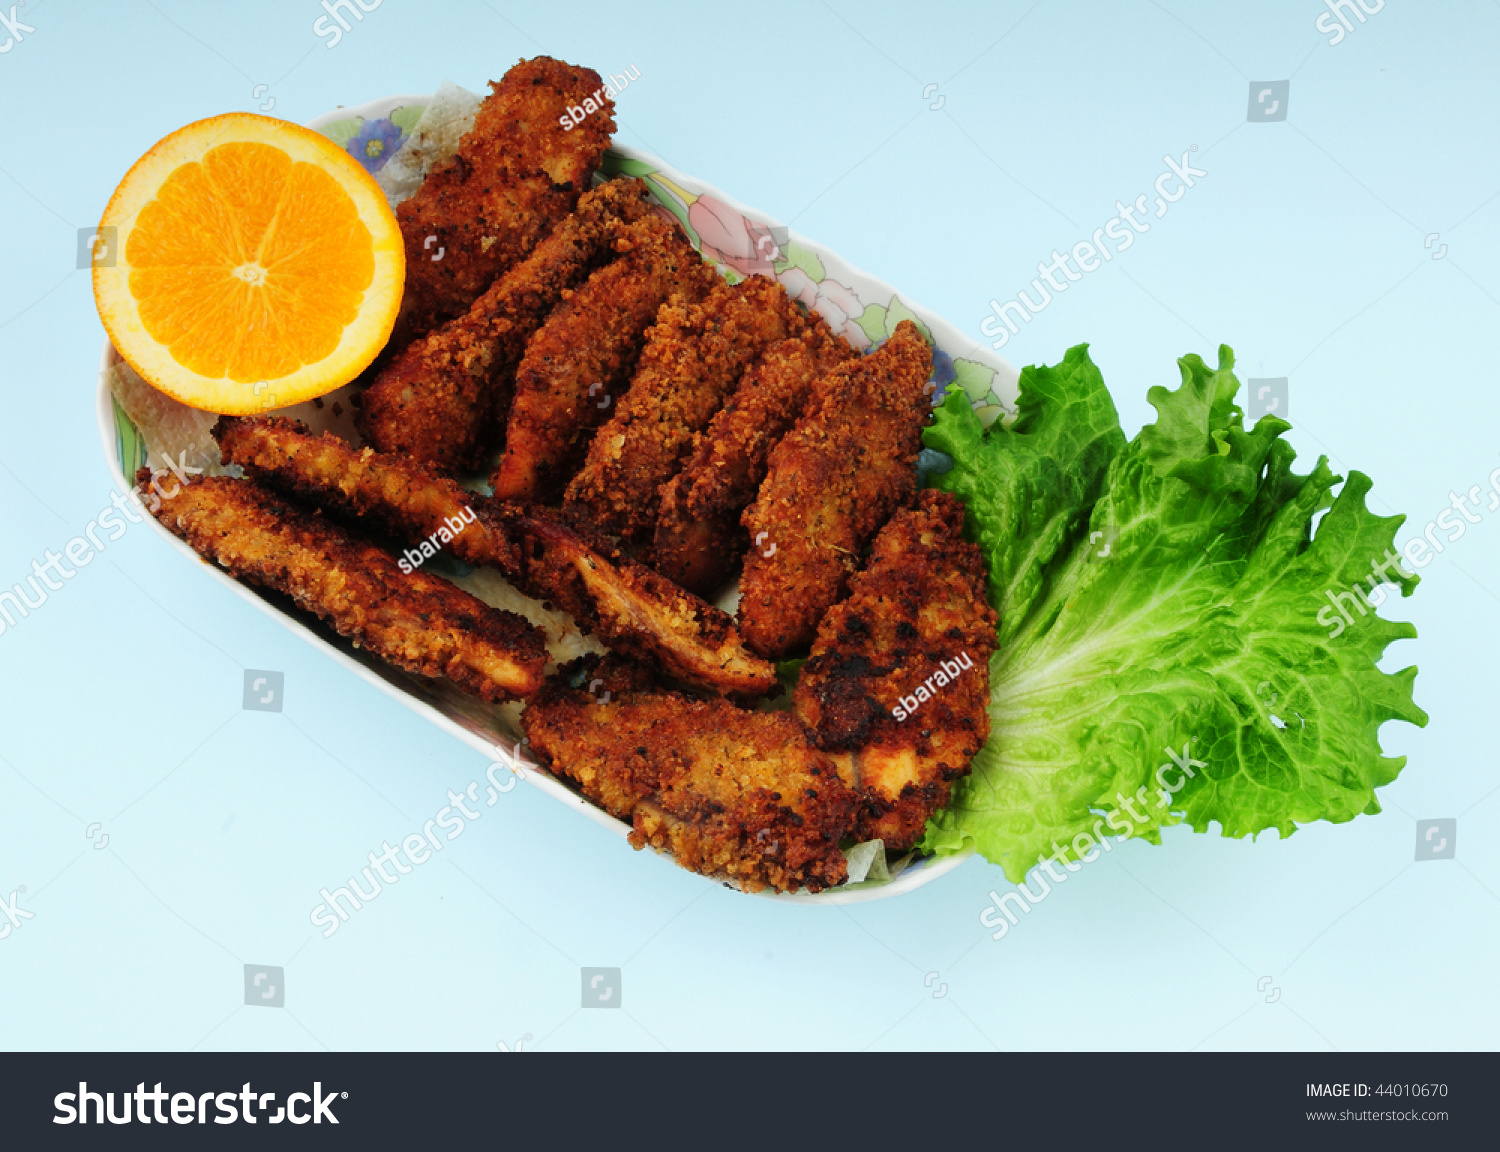 Fried fish with bread crumbs stock photo 44010670 for Fried fish with bread crumbs